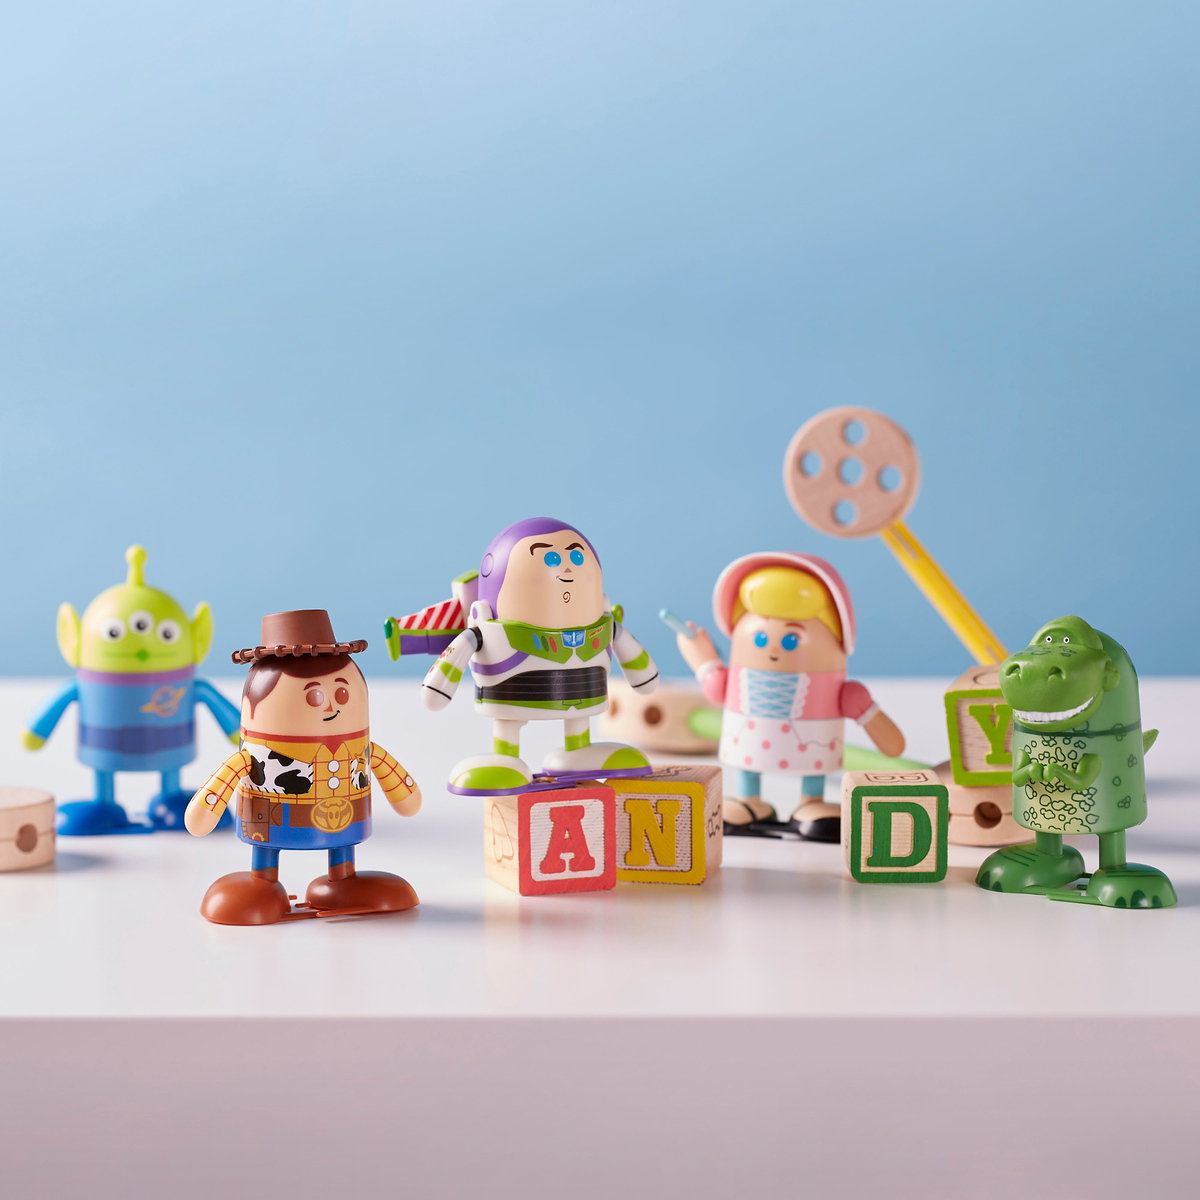 SHOP: Toy Story Shufflerz Arrive On ShopDisney